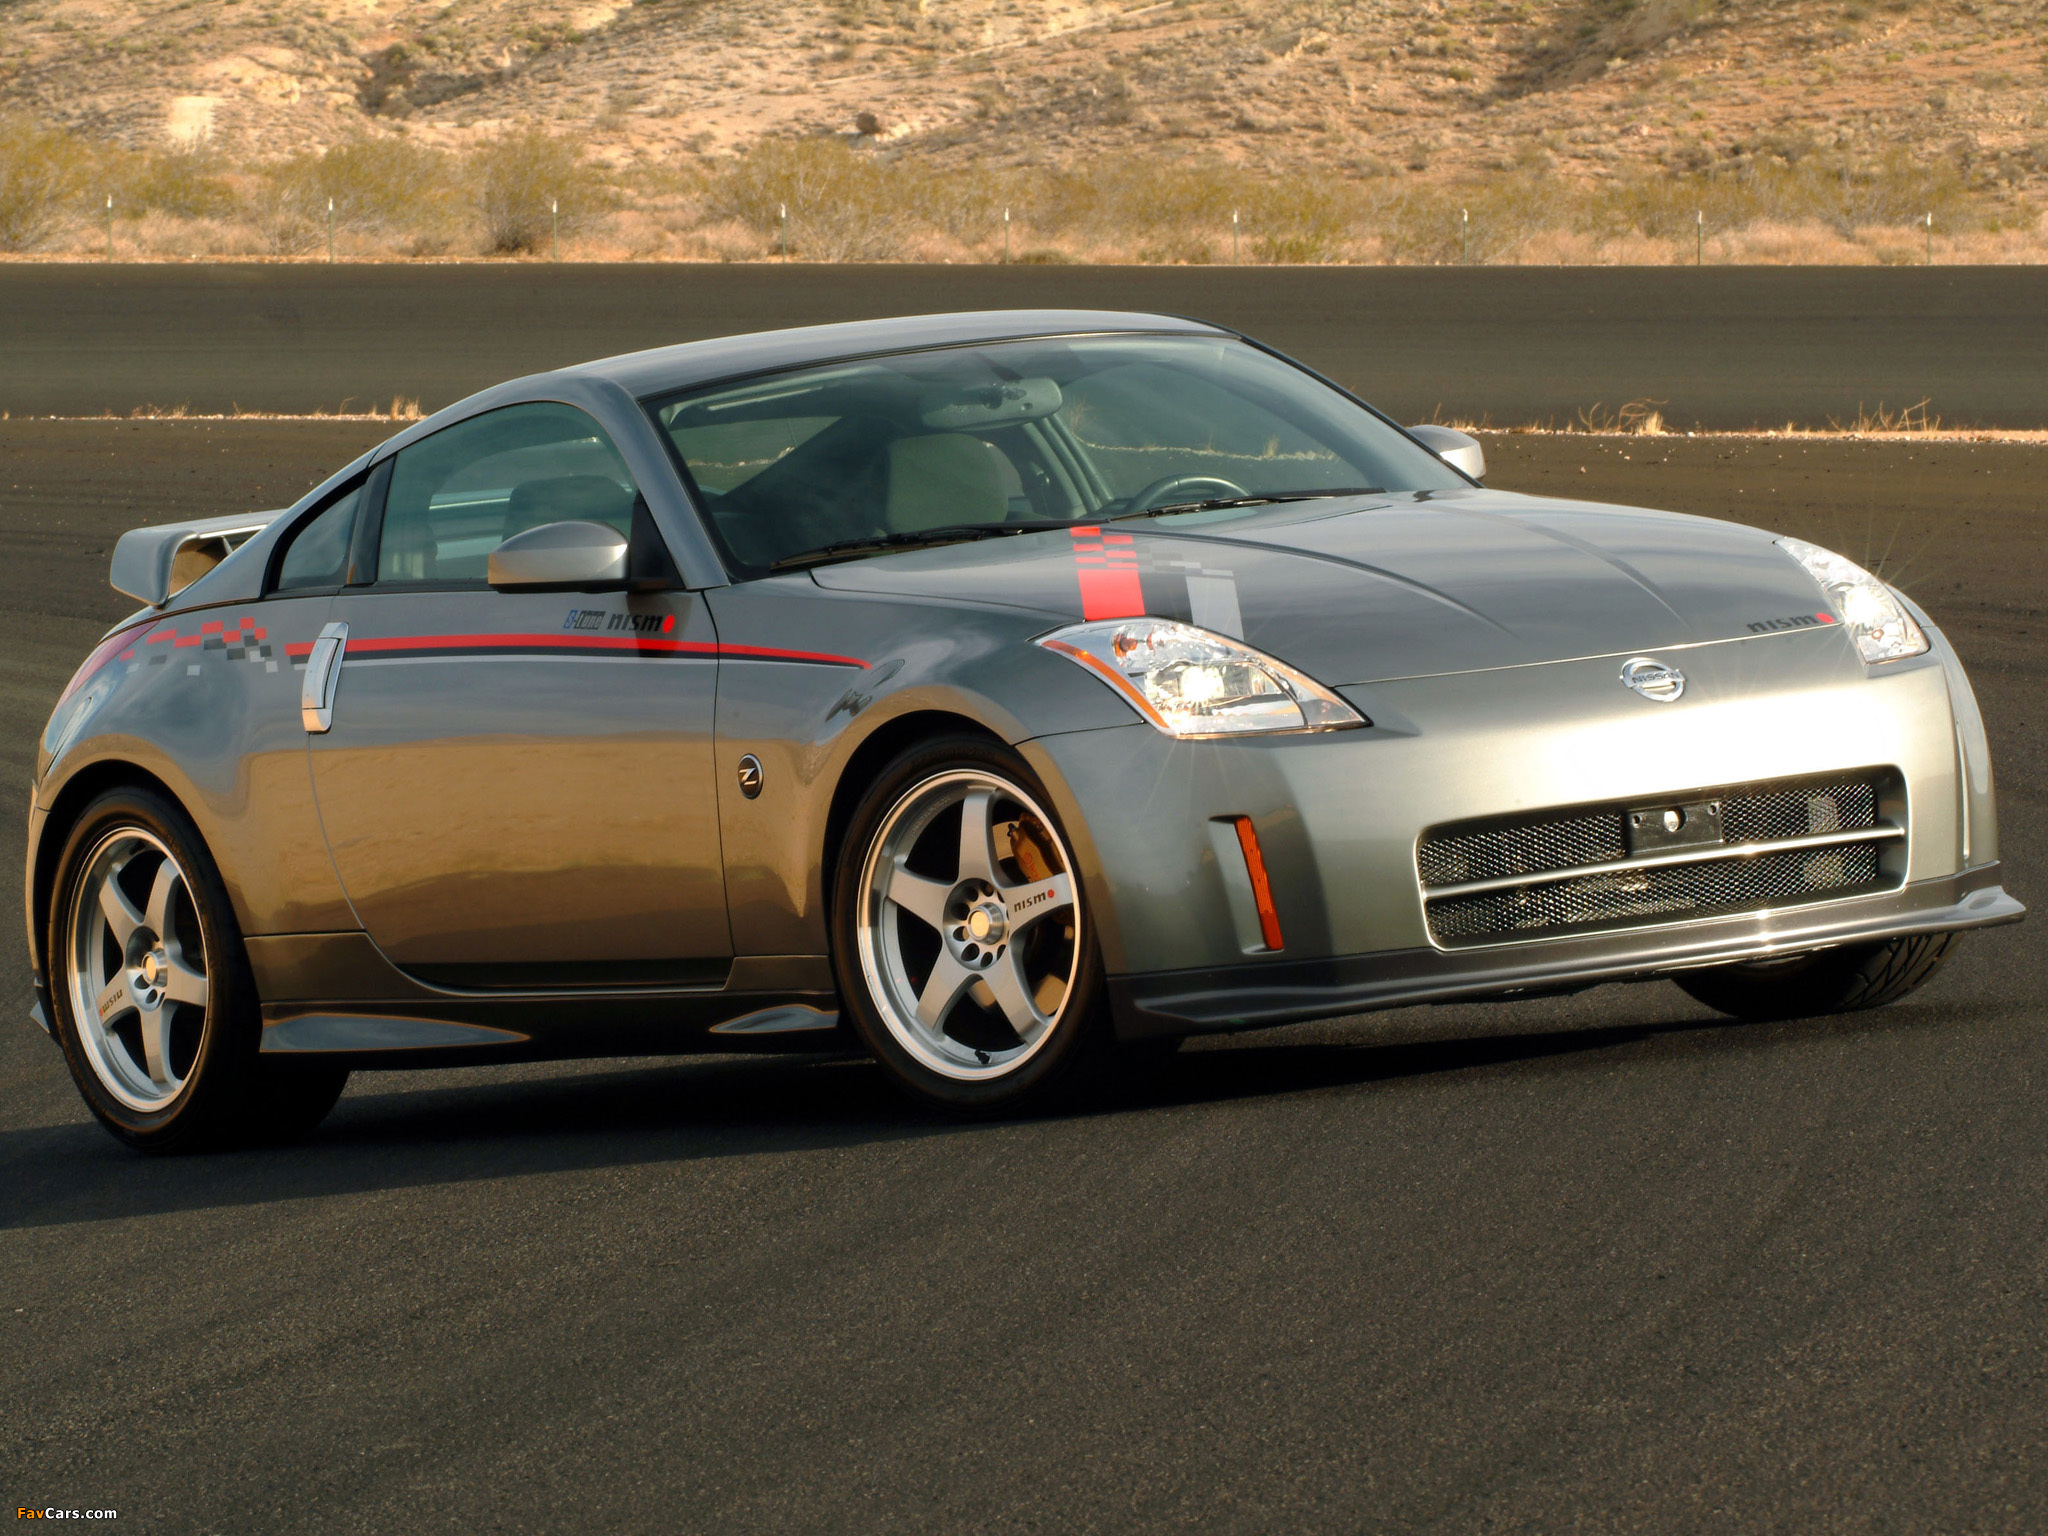 pictures of nissan 350z nismo s tune z33 2008 2048x1536. Black Bedroom Furniture Sets. Home Design Ideas